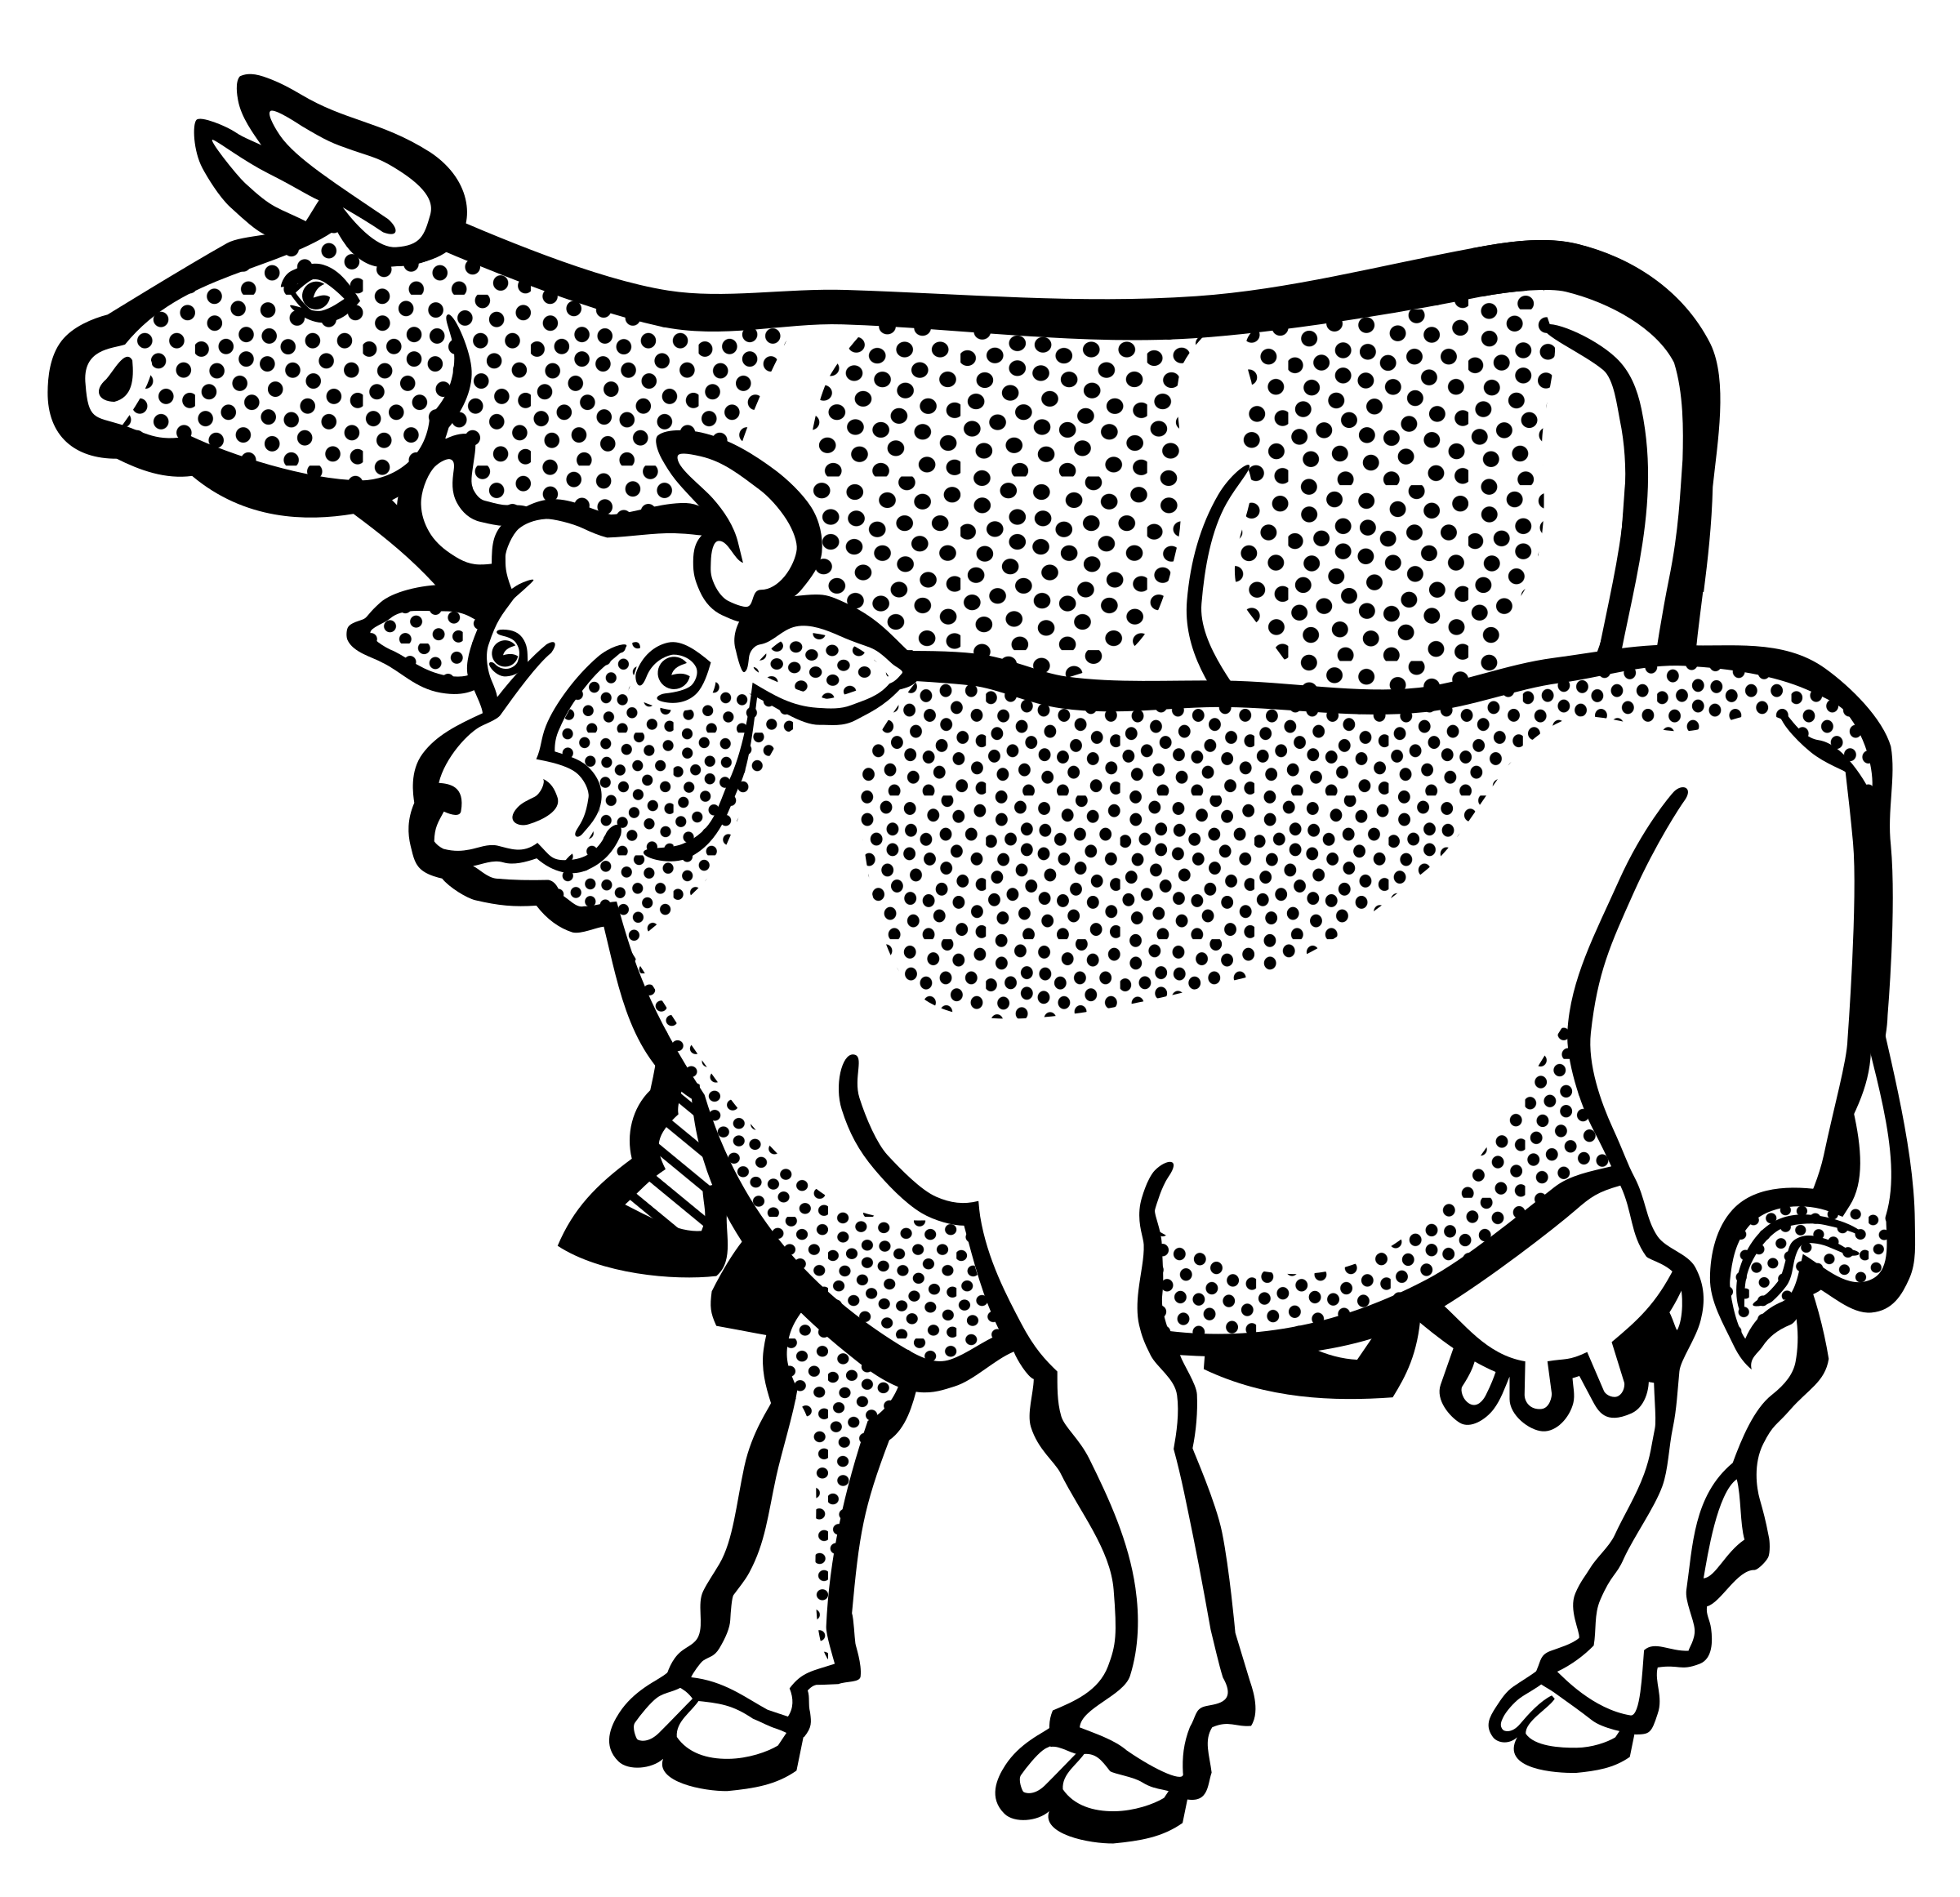 cows - lineart by frankes